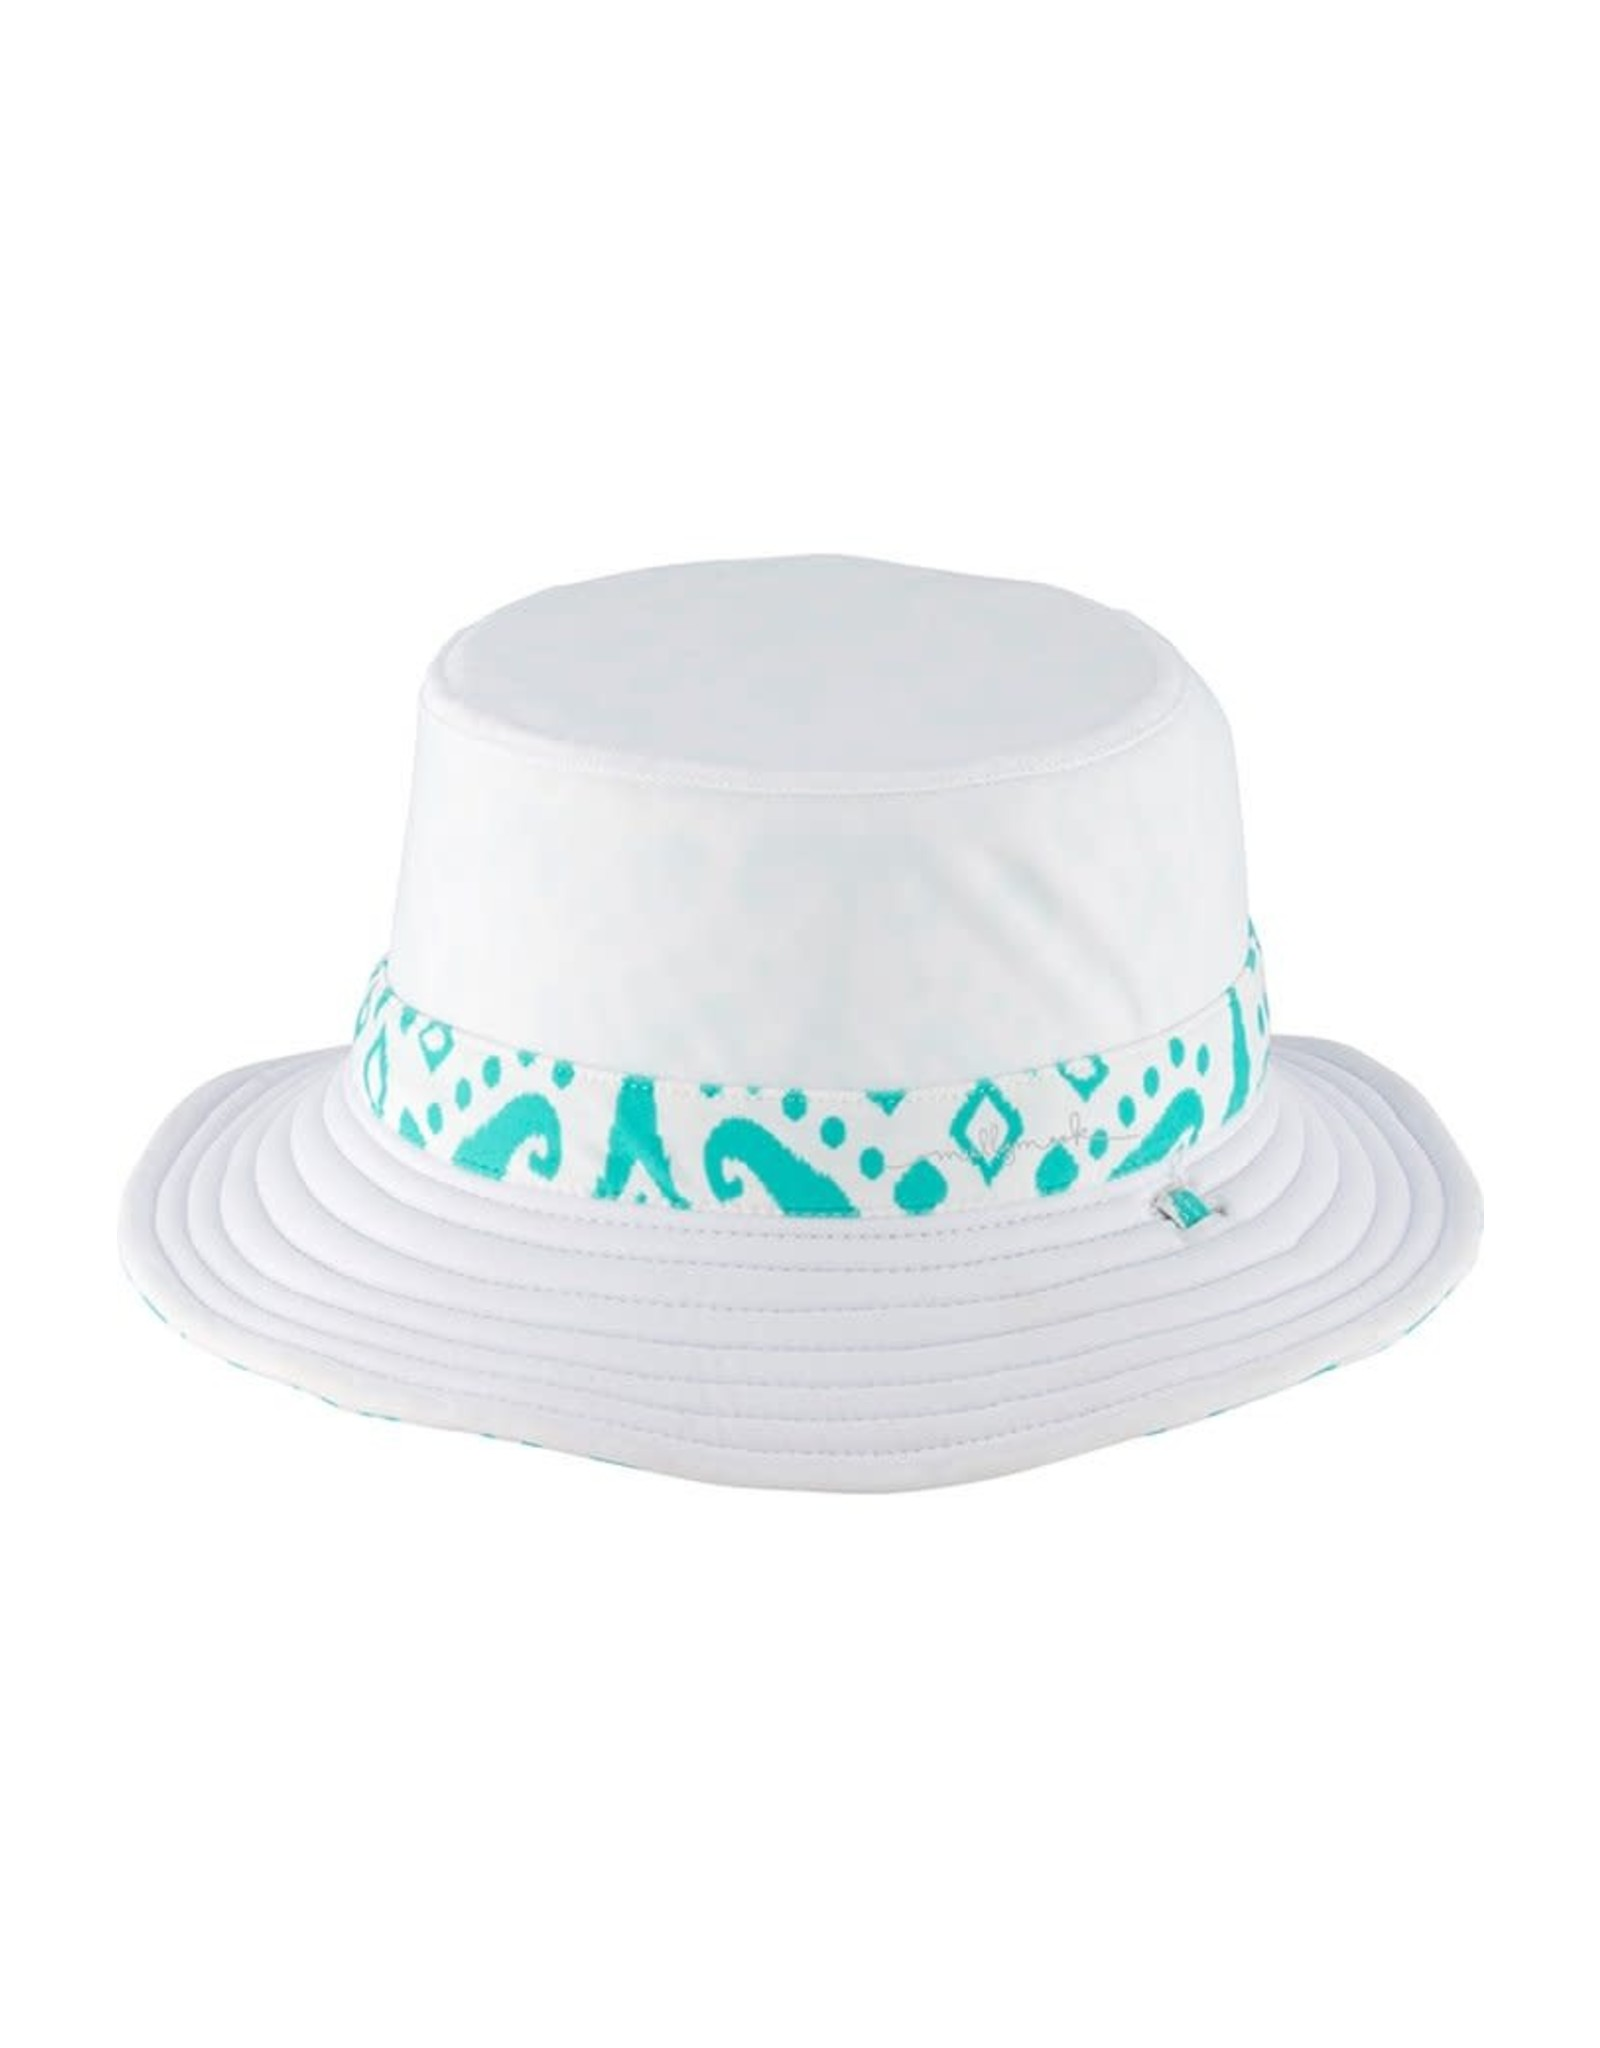 EARTH NYMPH EARTH NYMPH FIONA WETHAT BUCKET HAT